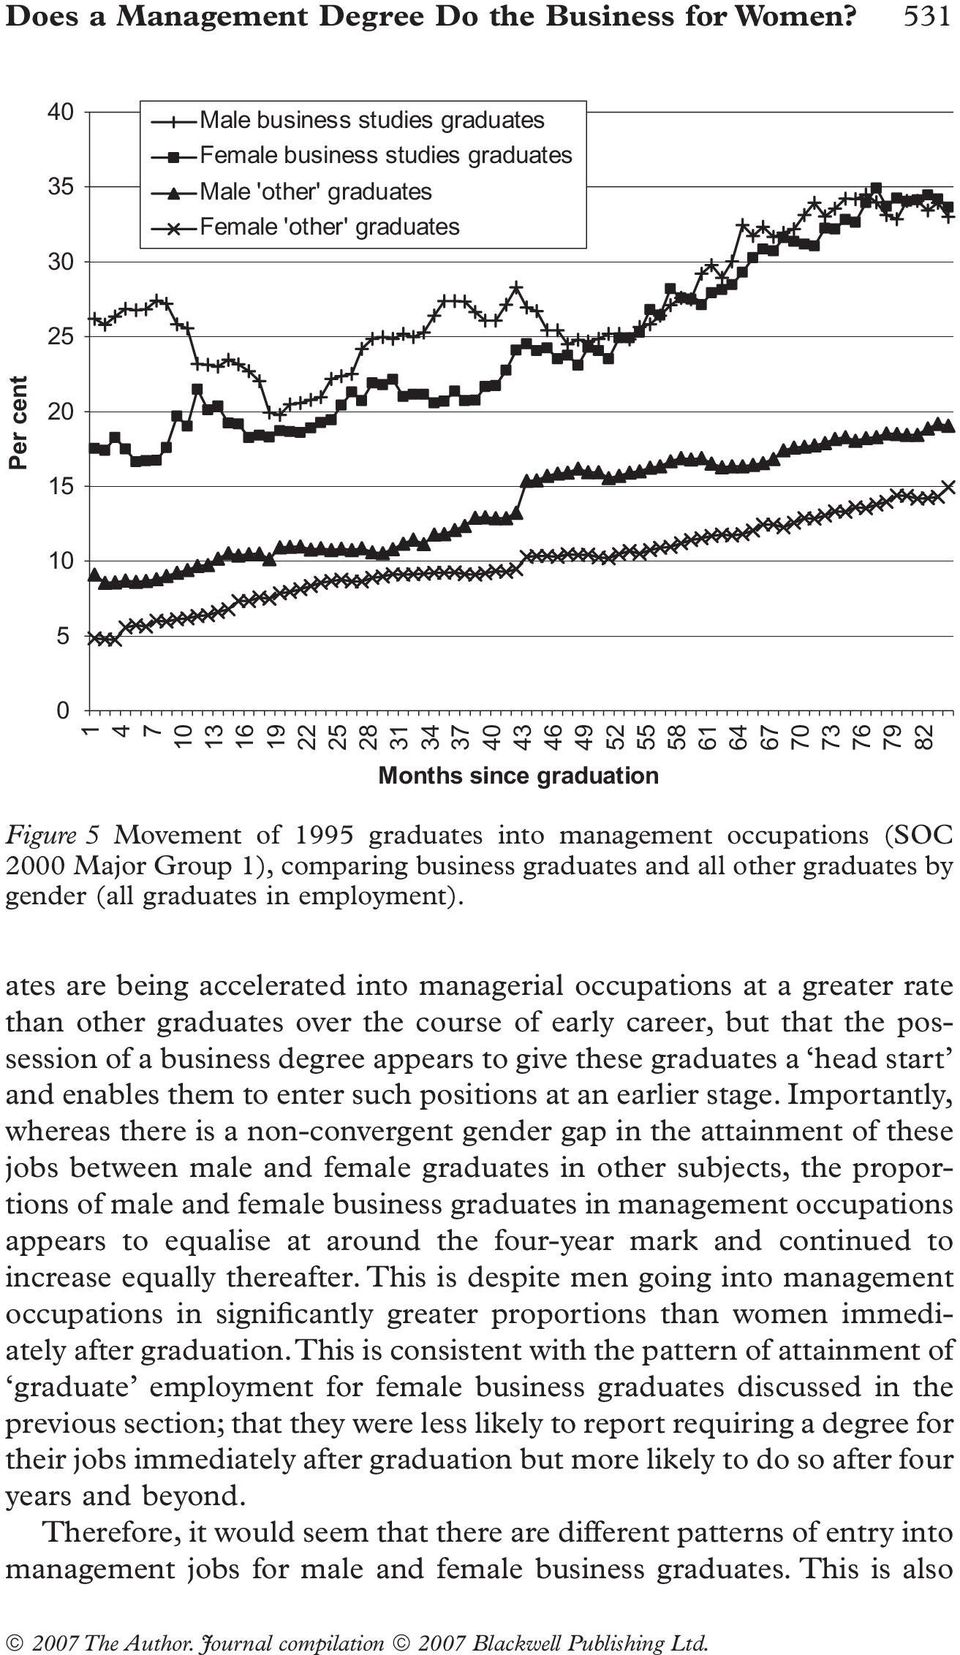 52 55 58 61 64 67 70 73 76 79 82 Months since graduation Figure 5 Movement of 1995 graduates into management occupations (SOC 2000 Major Group 1), comparing business graduates and all other graduates